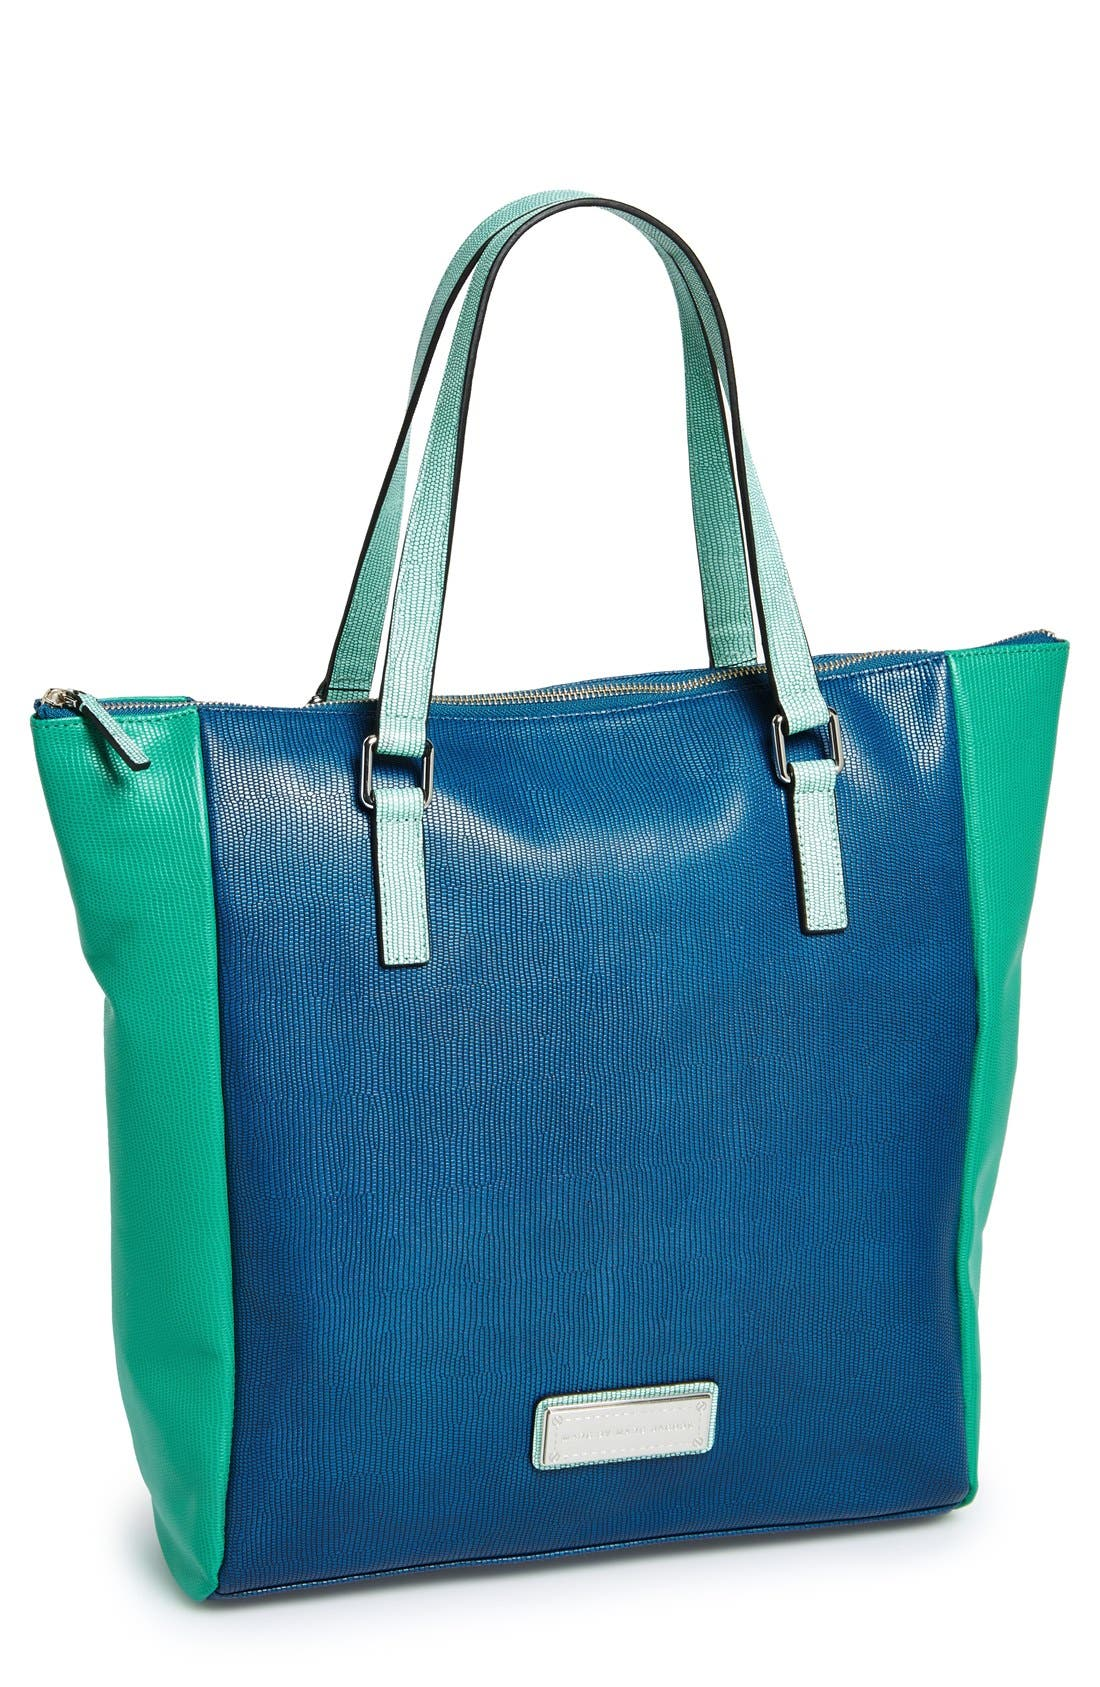 Alternate Image 1 Selected - MARC BY MARC JACOBS 'Take Me' Leather Tote